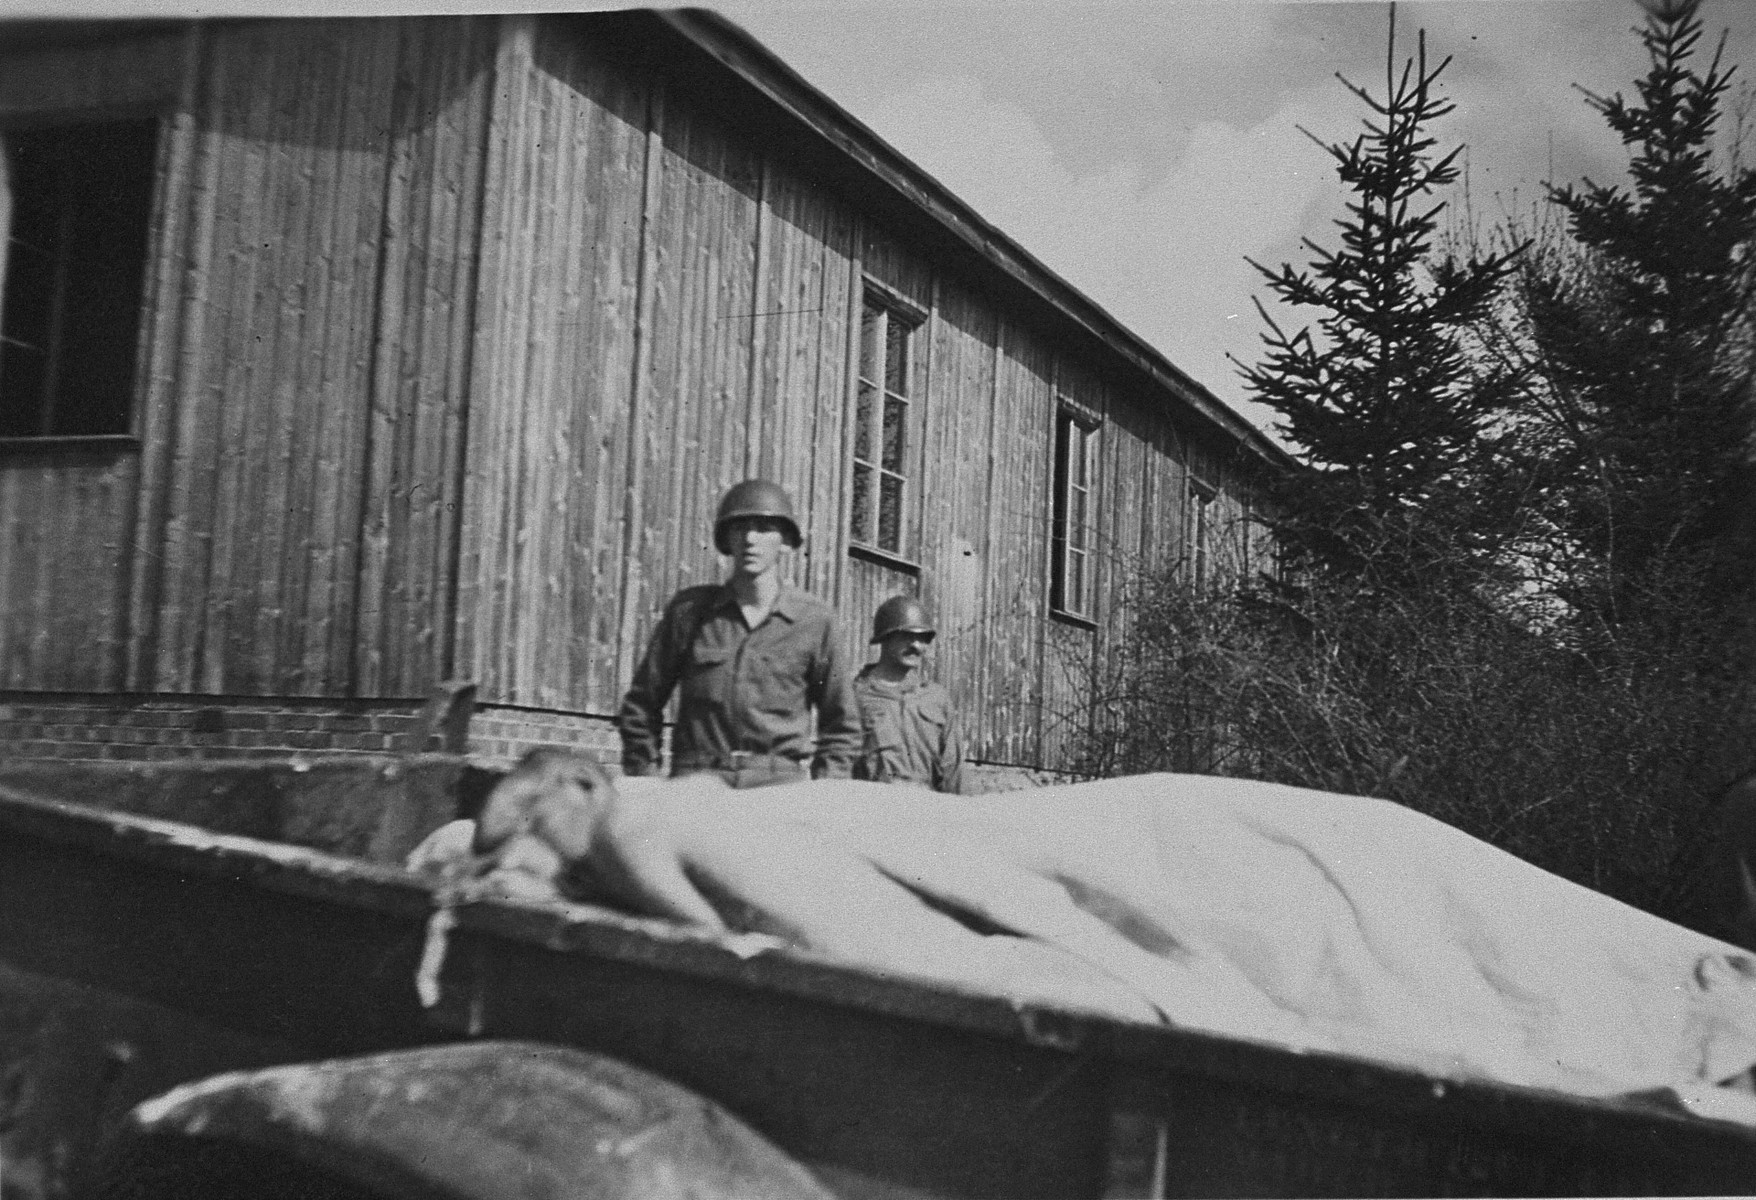 American soldiers view a wagon full of corpses at the newly liberated Ohrdruf concentration camp.